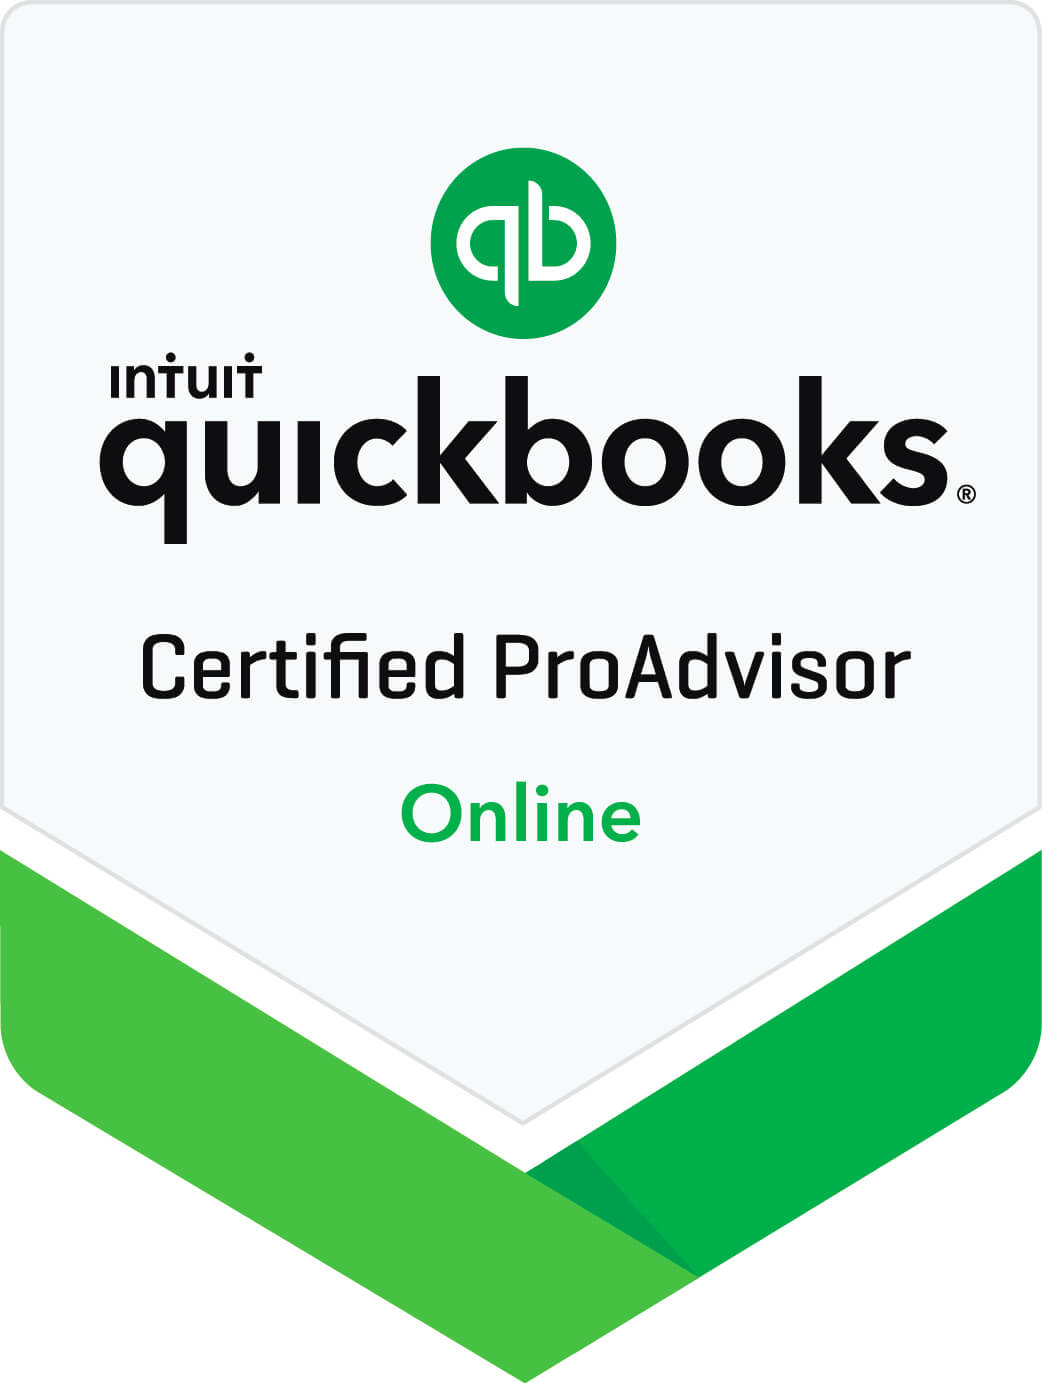 Quickbooks accounting software certification